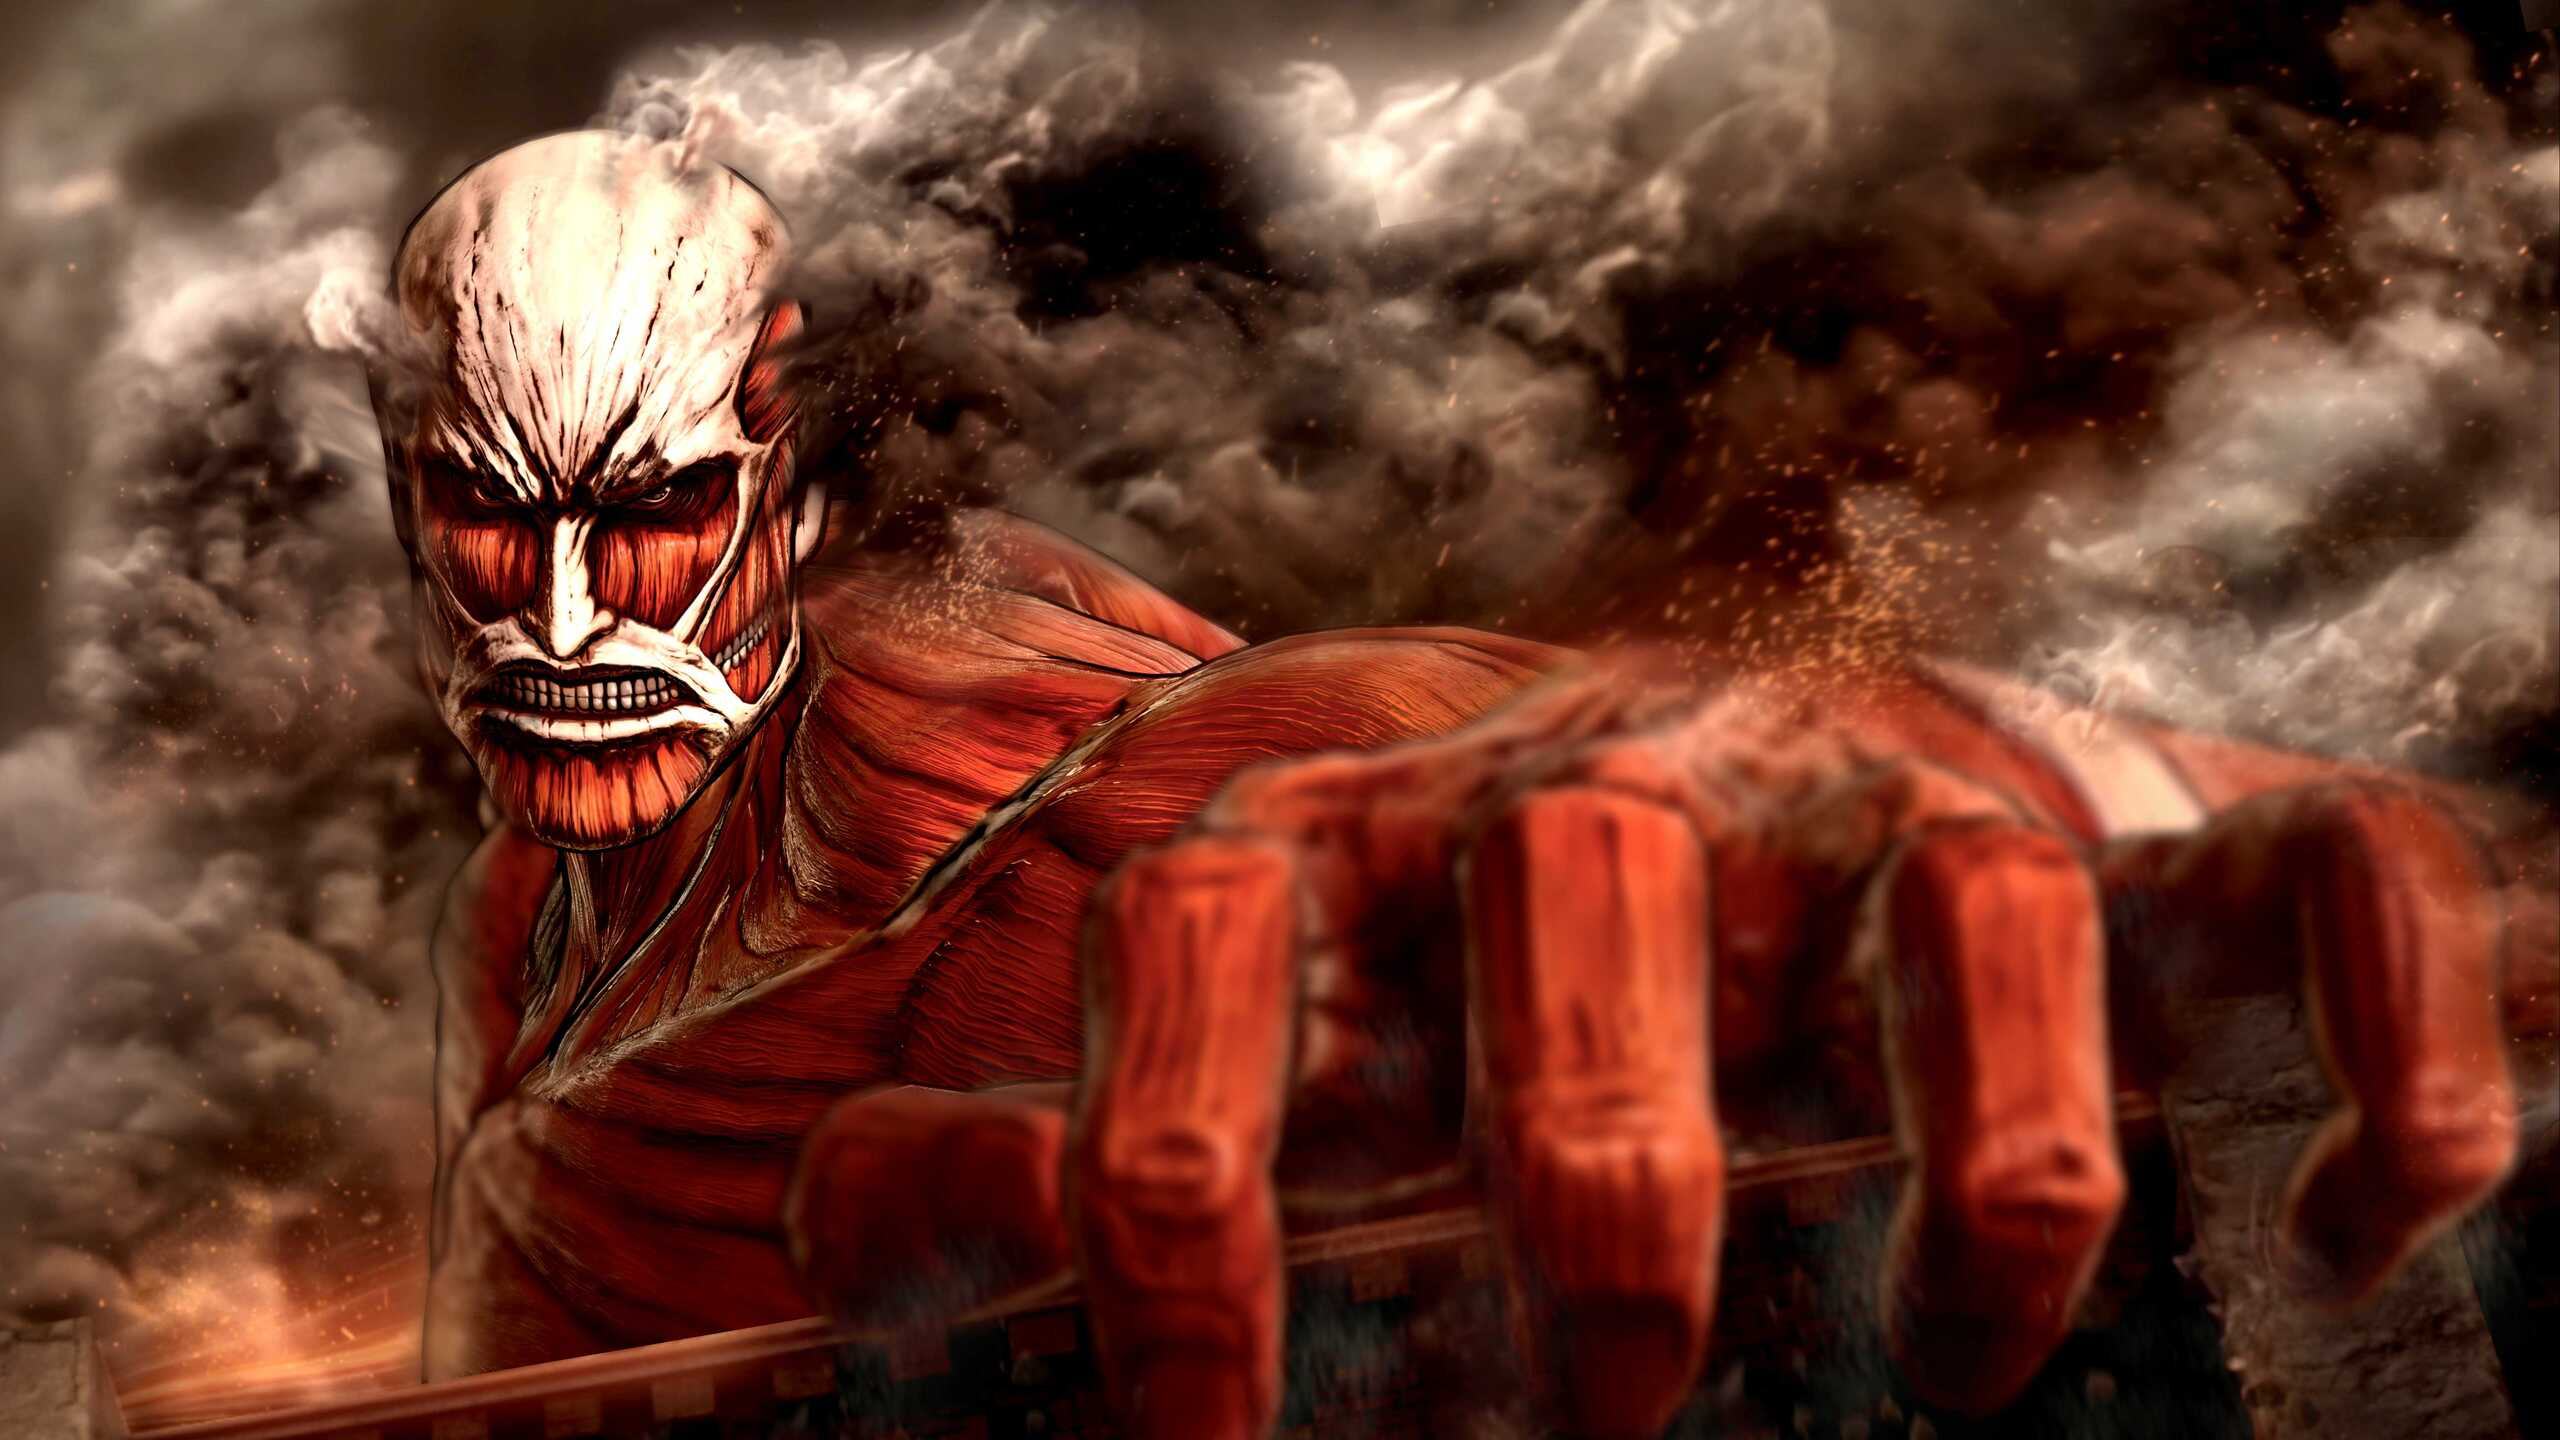 2560x1440 Attack On Titan 1440p Resolution Hd 4k Wallpapers